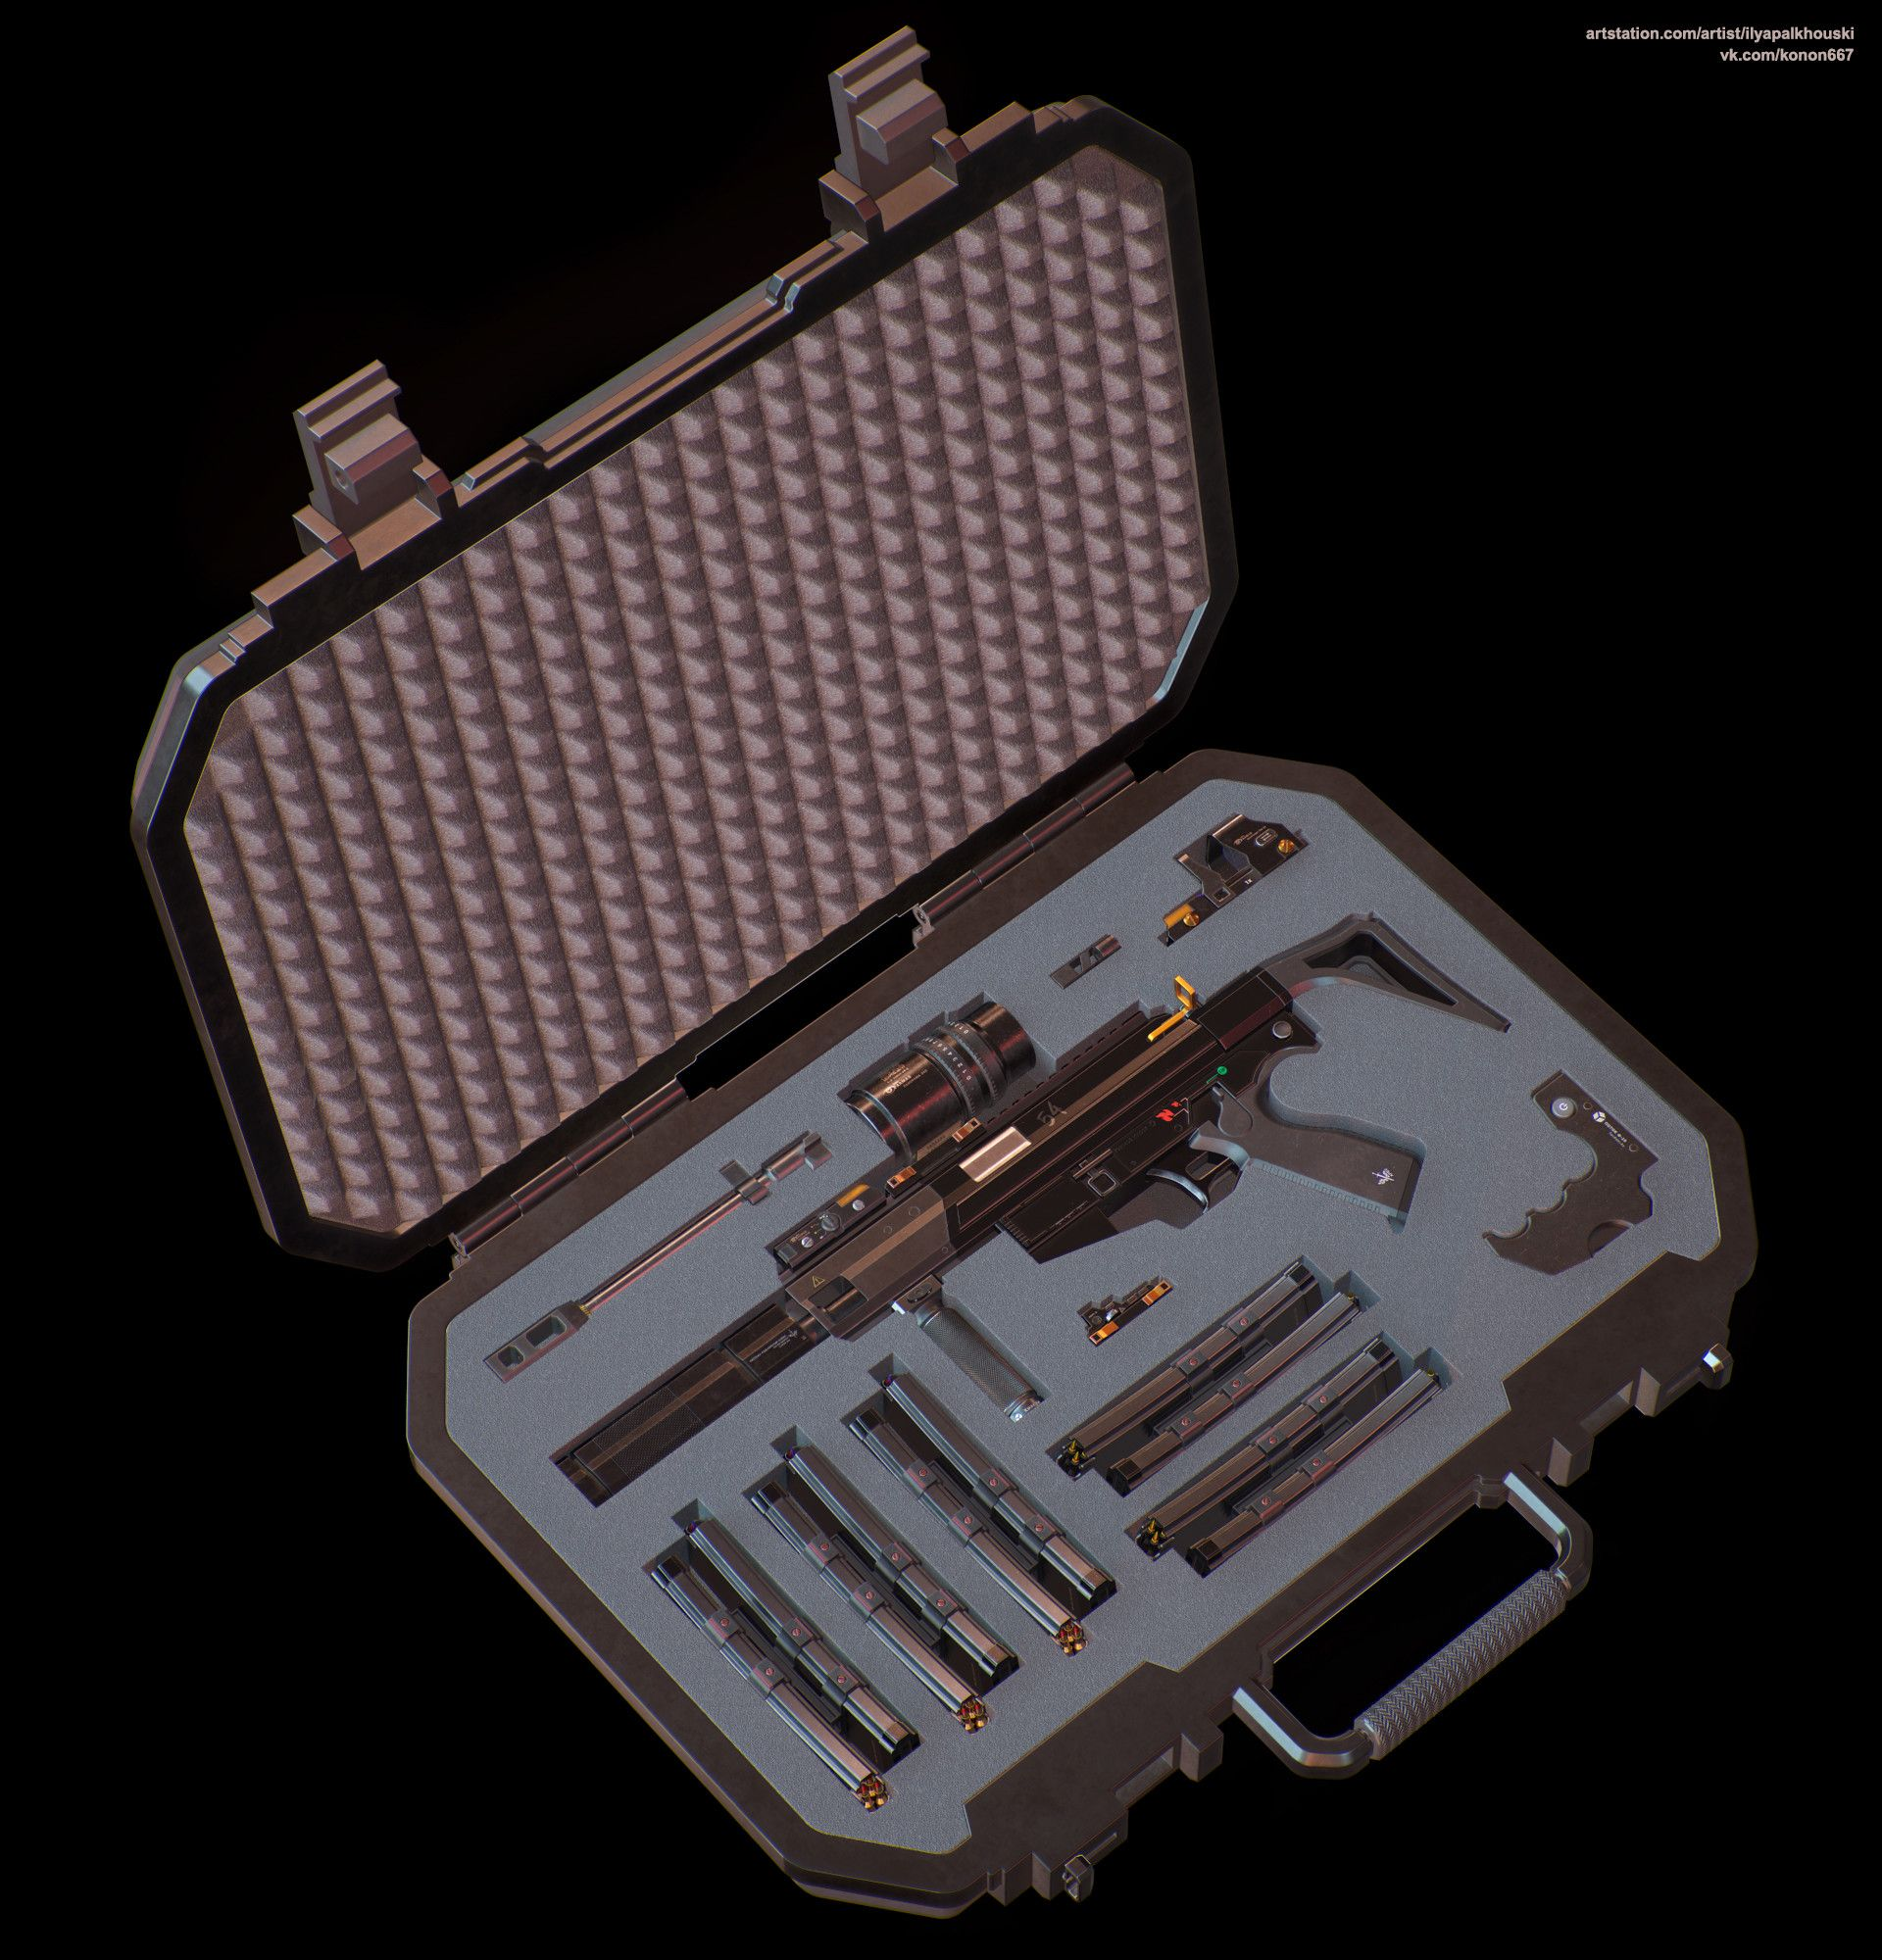 Pin On Weapons Storage